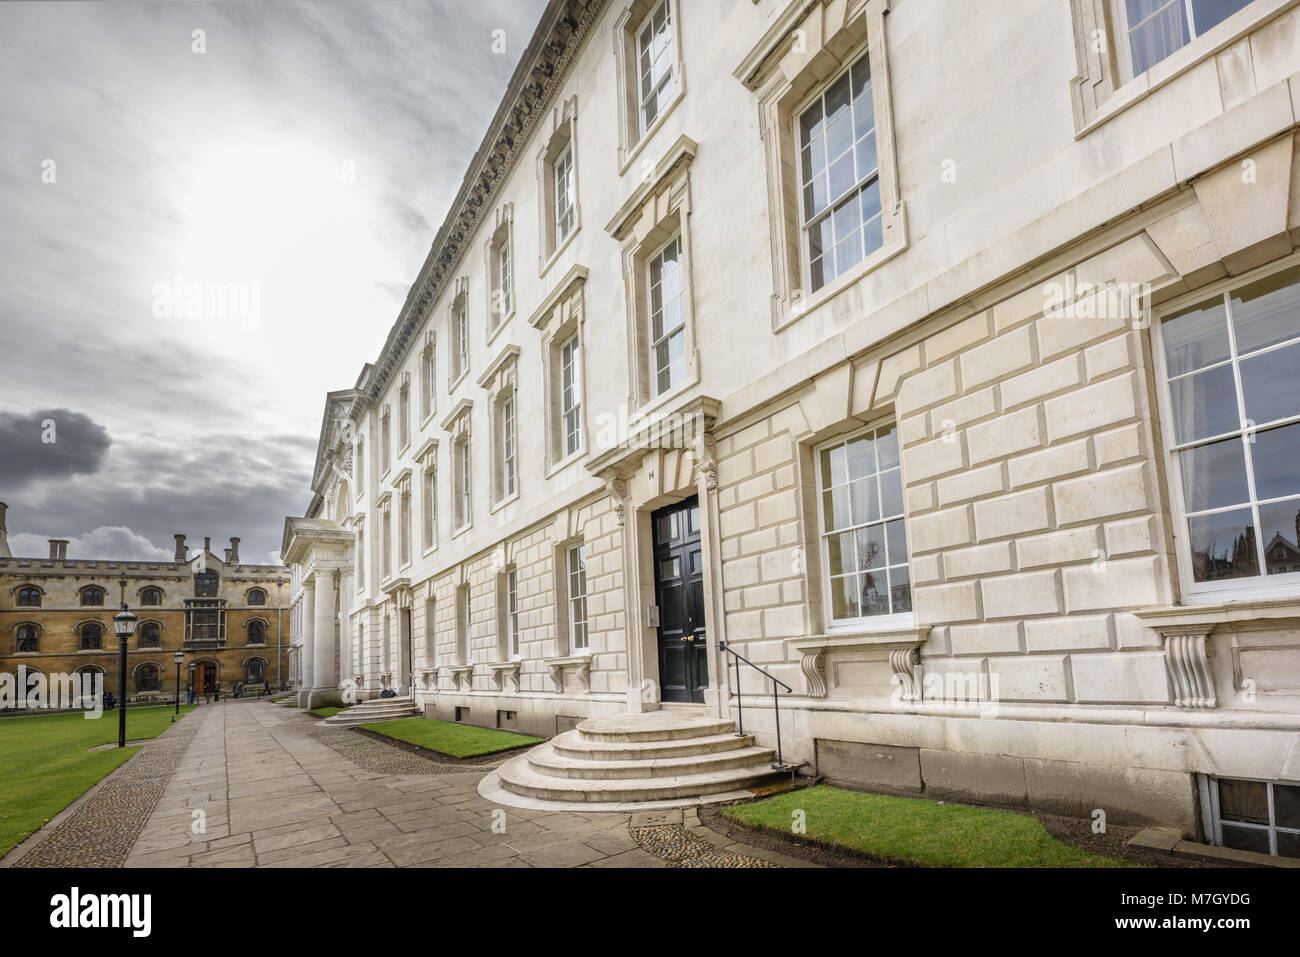 The facade of the Gibb's building, made of portland stone, at King's college, university of Cambridge, England. - Stock Image